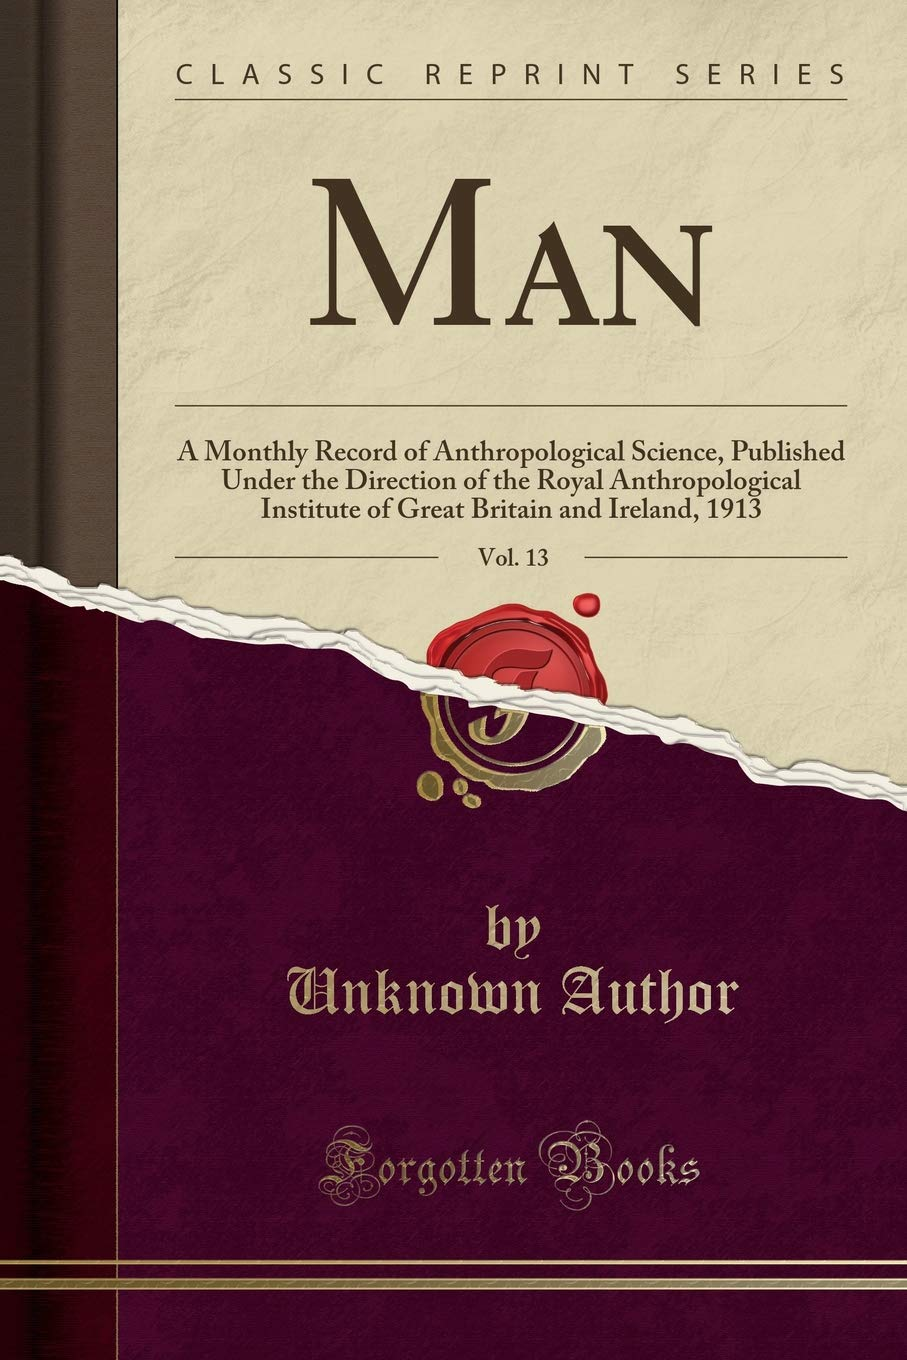 Download Man, Vol. 13: A Monthly Record of Anthropological Science, Published Under the Direction of the Royal Anthropological Institute of Great Britain and Ireland, 1913 (Classic Reprint) ebook